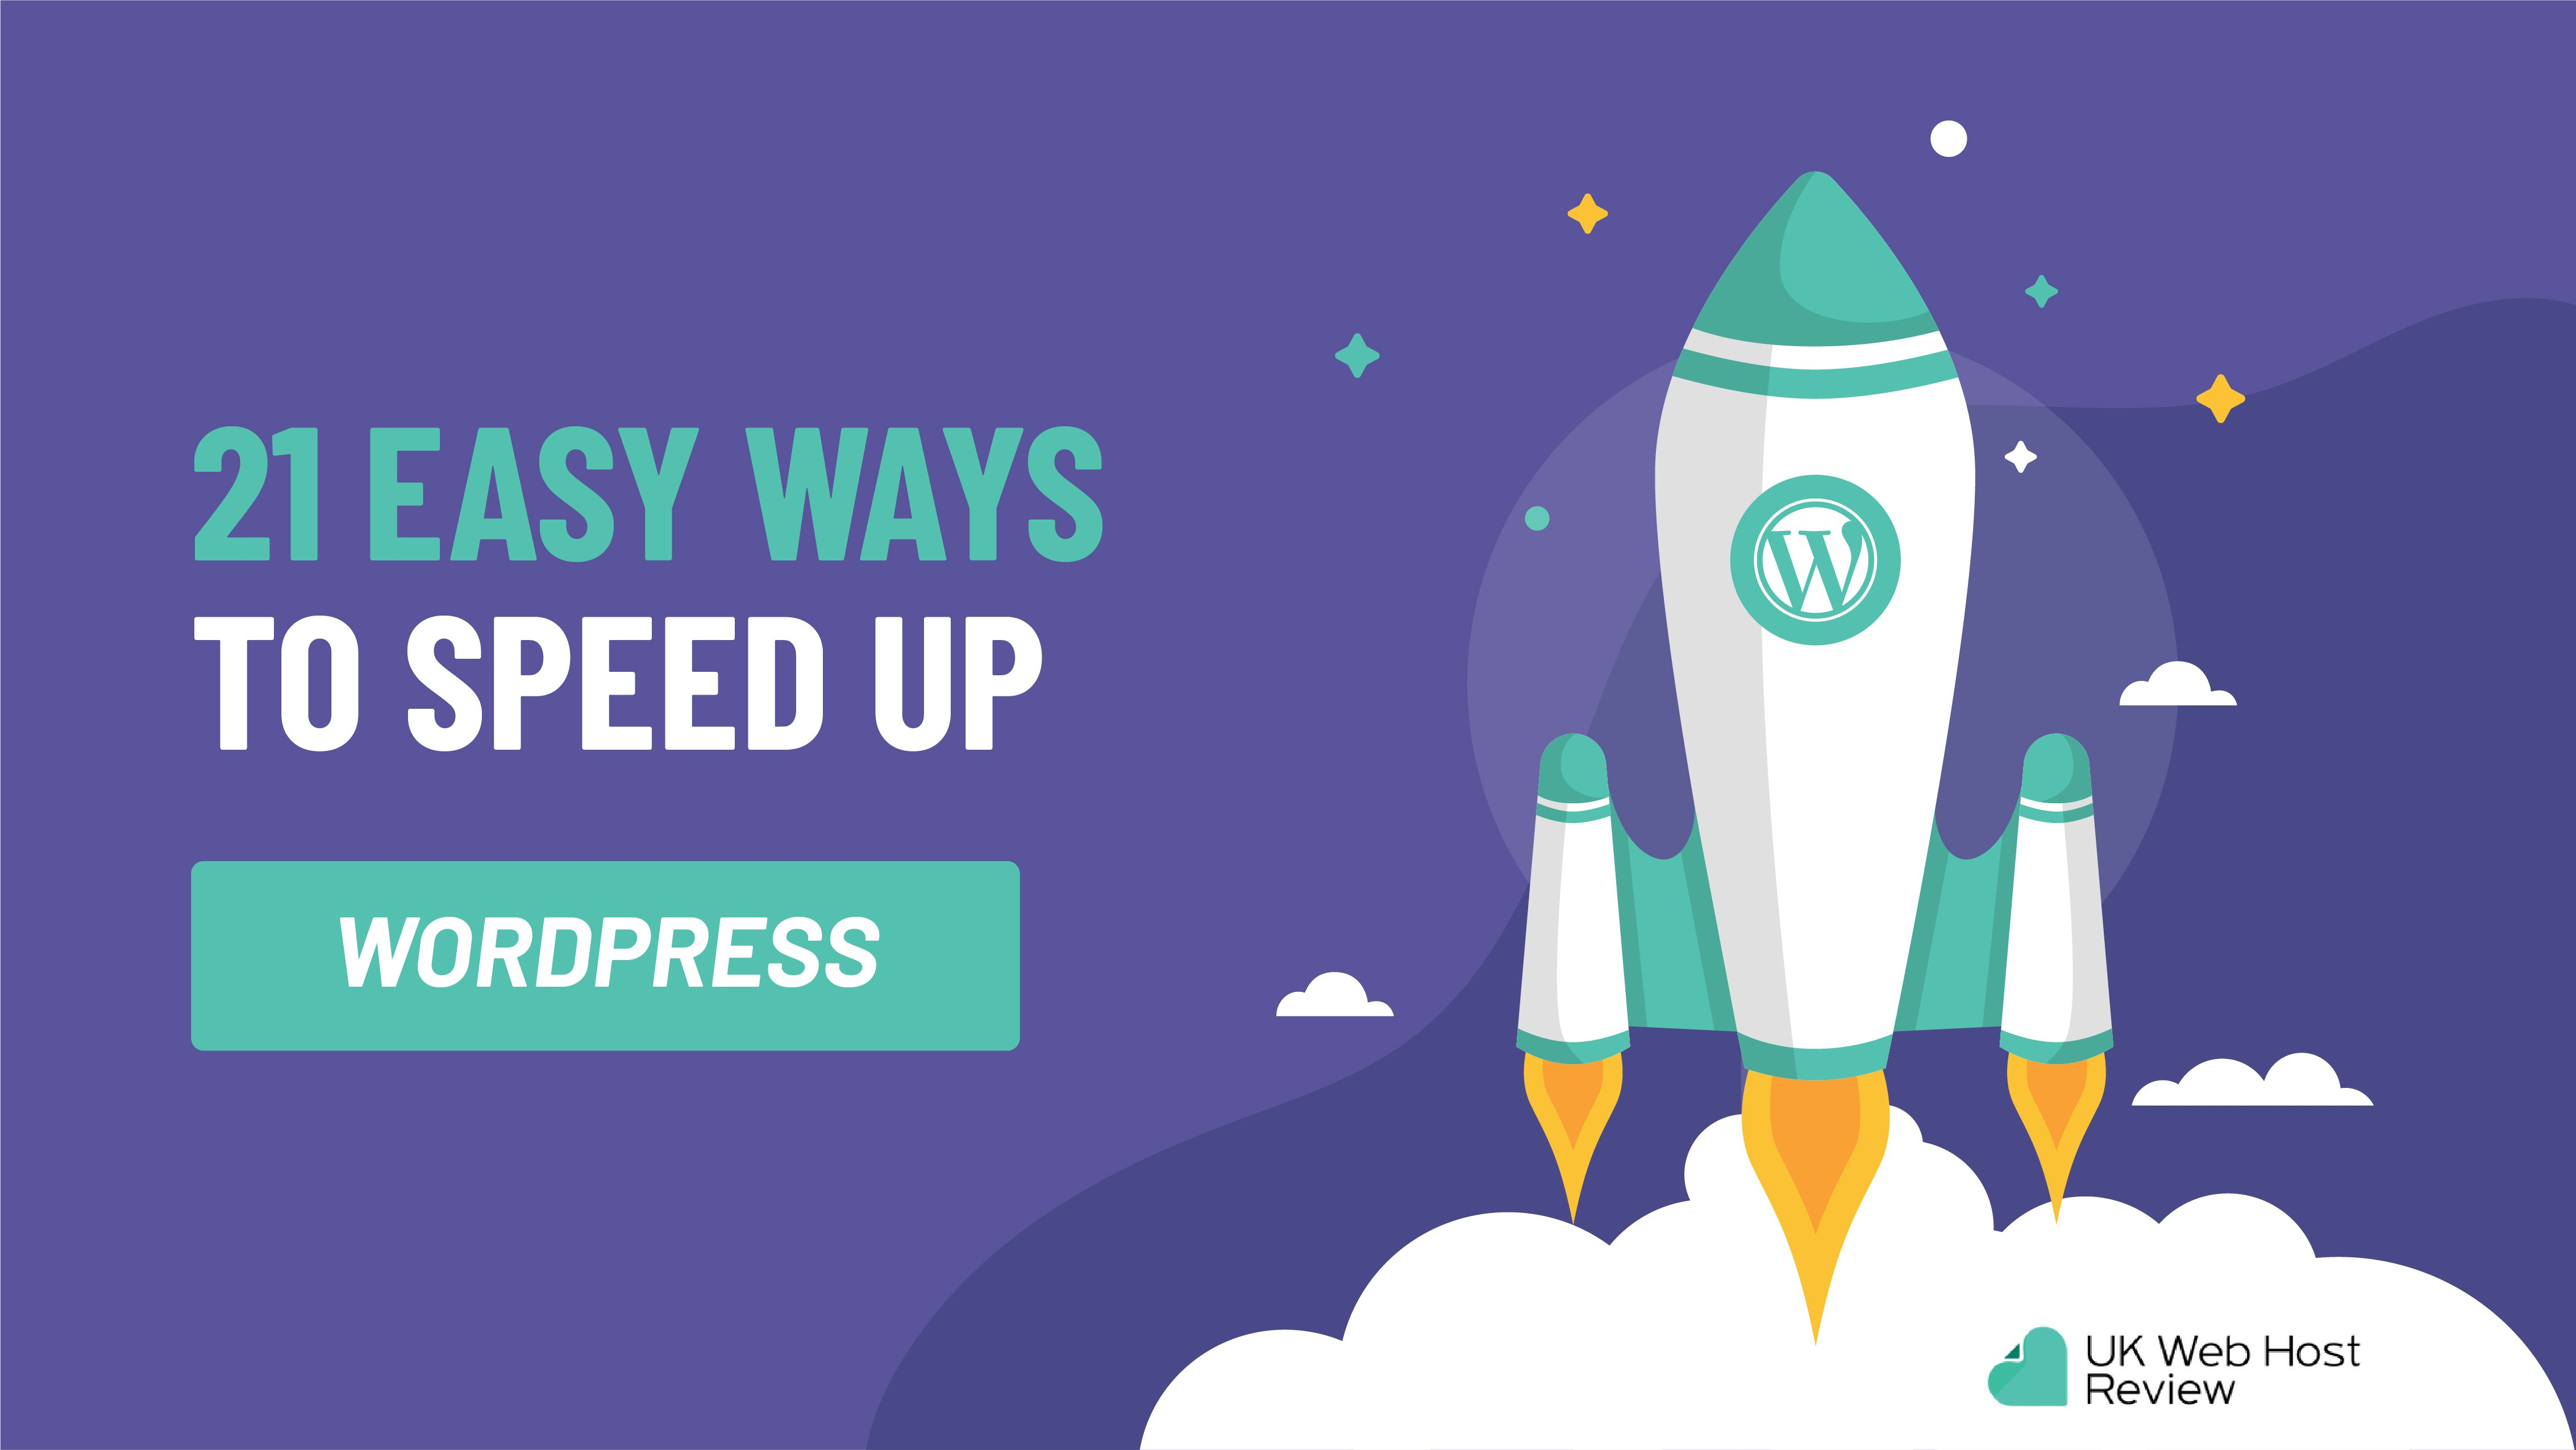 21 Easy Ways to Speed Up WordPress